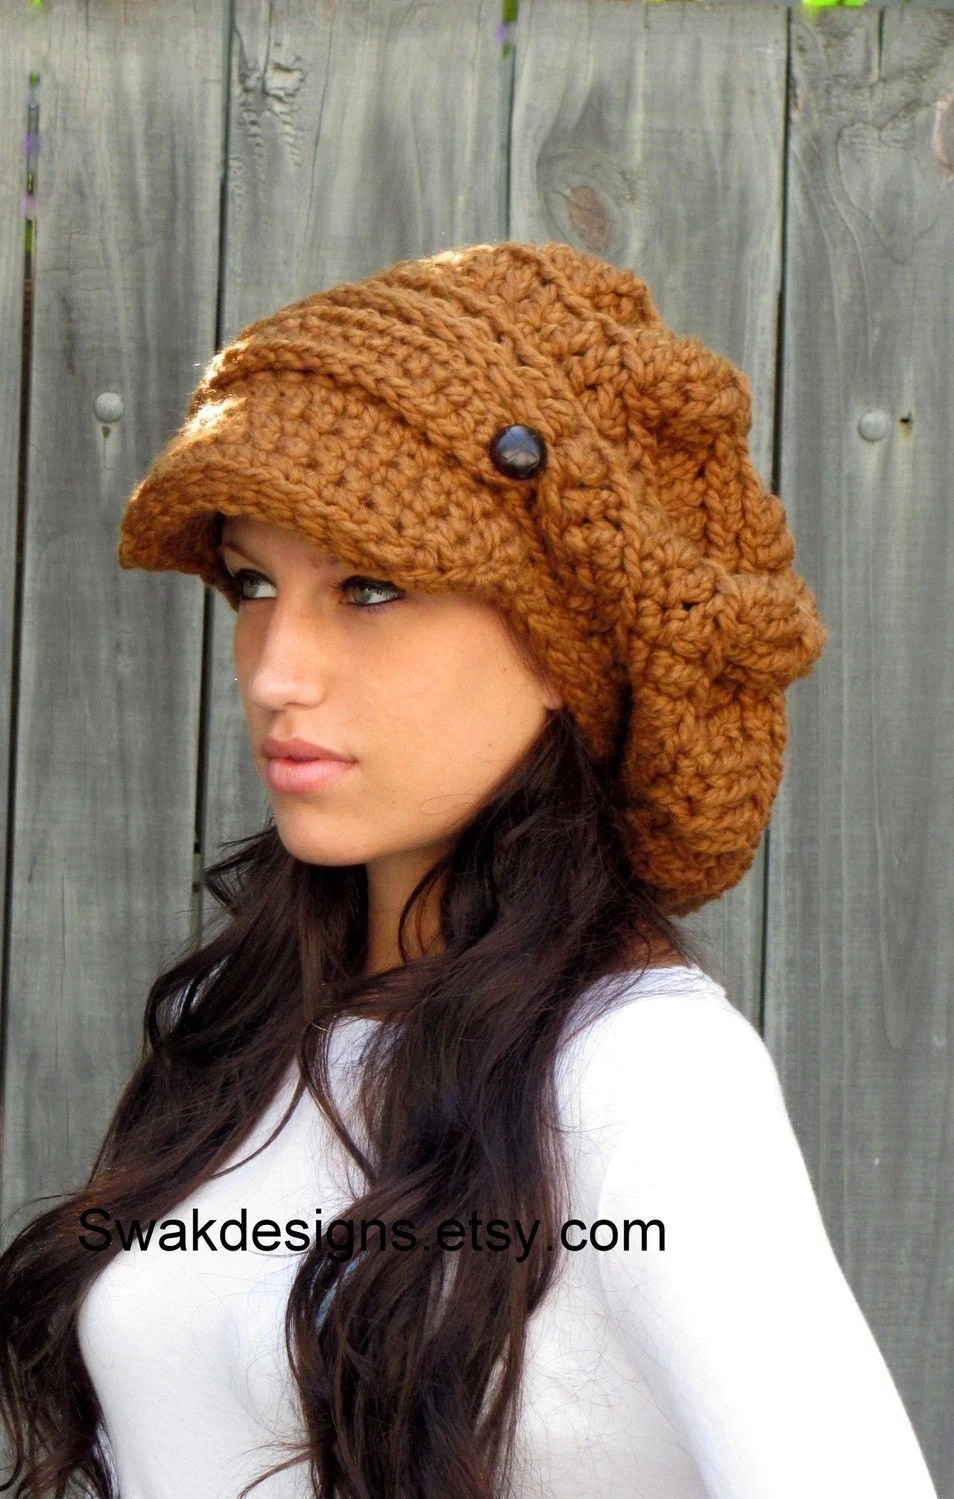 Two Button Band Slouchy Newsboy Cap - Oversized - Hazelnut - Handmade - CHOOSE Your color